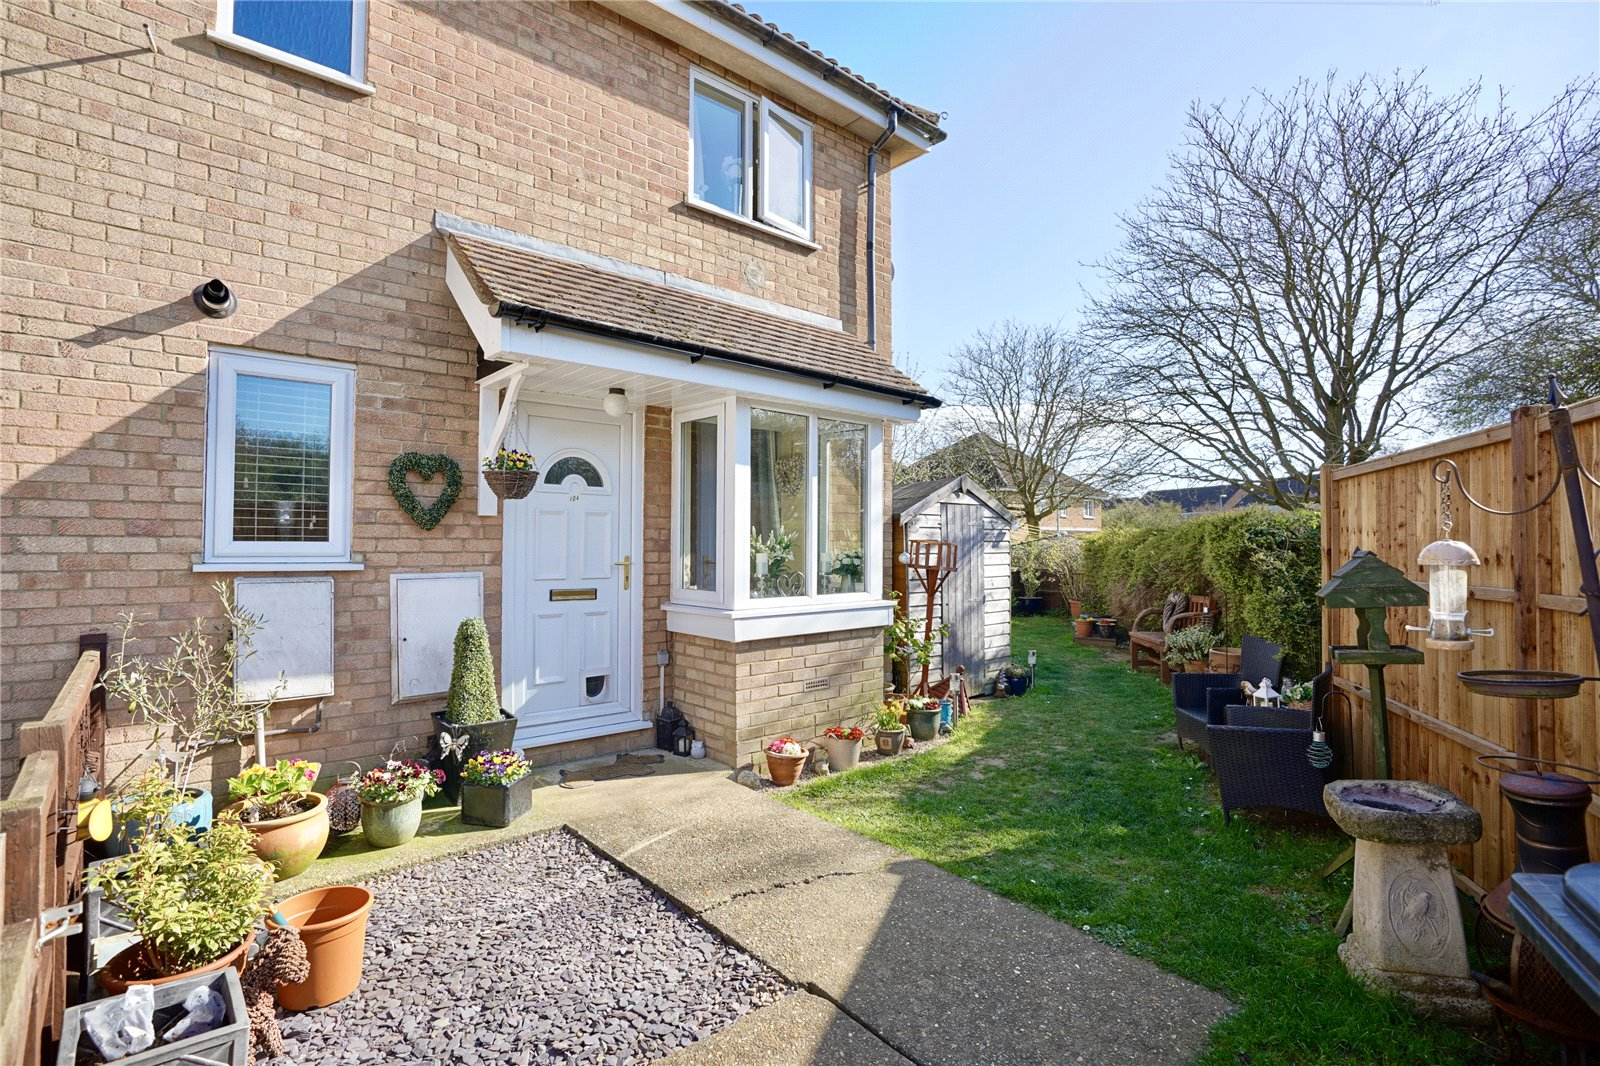 1 bed house for sale in Muntjac Close, Eaton Socon  - Property Image 1